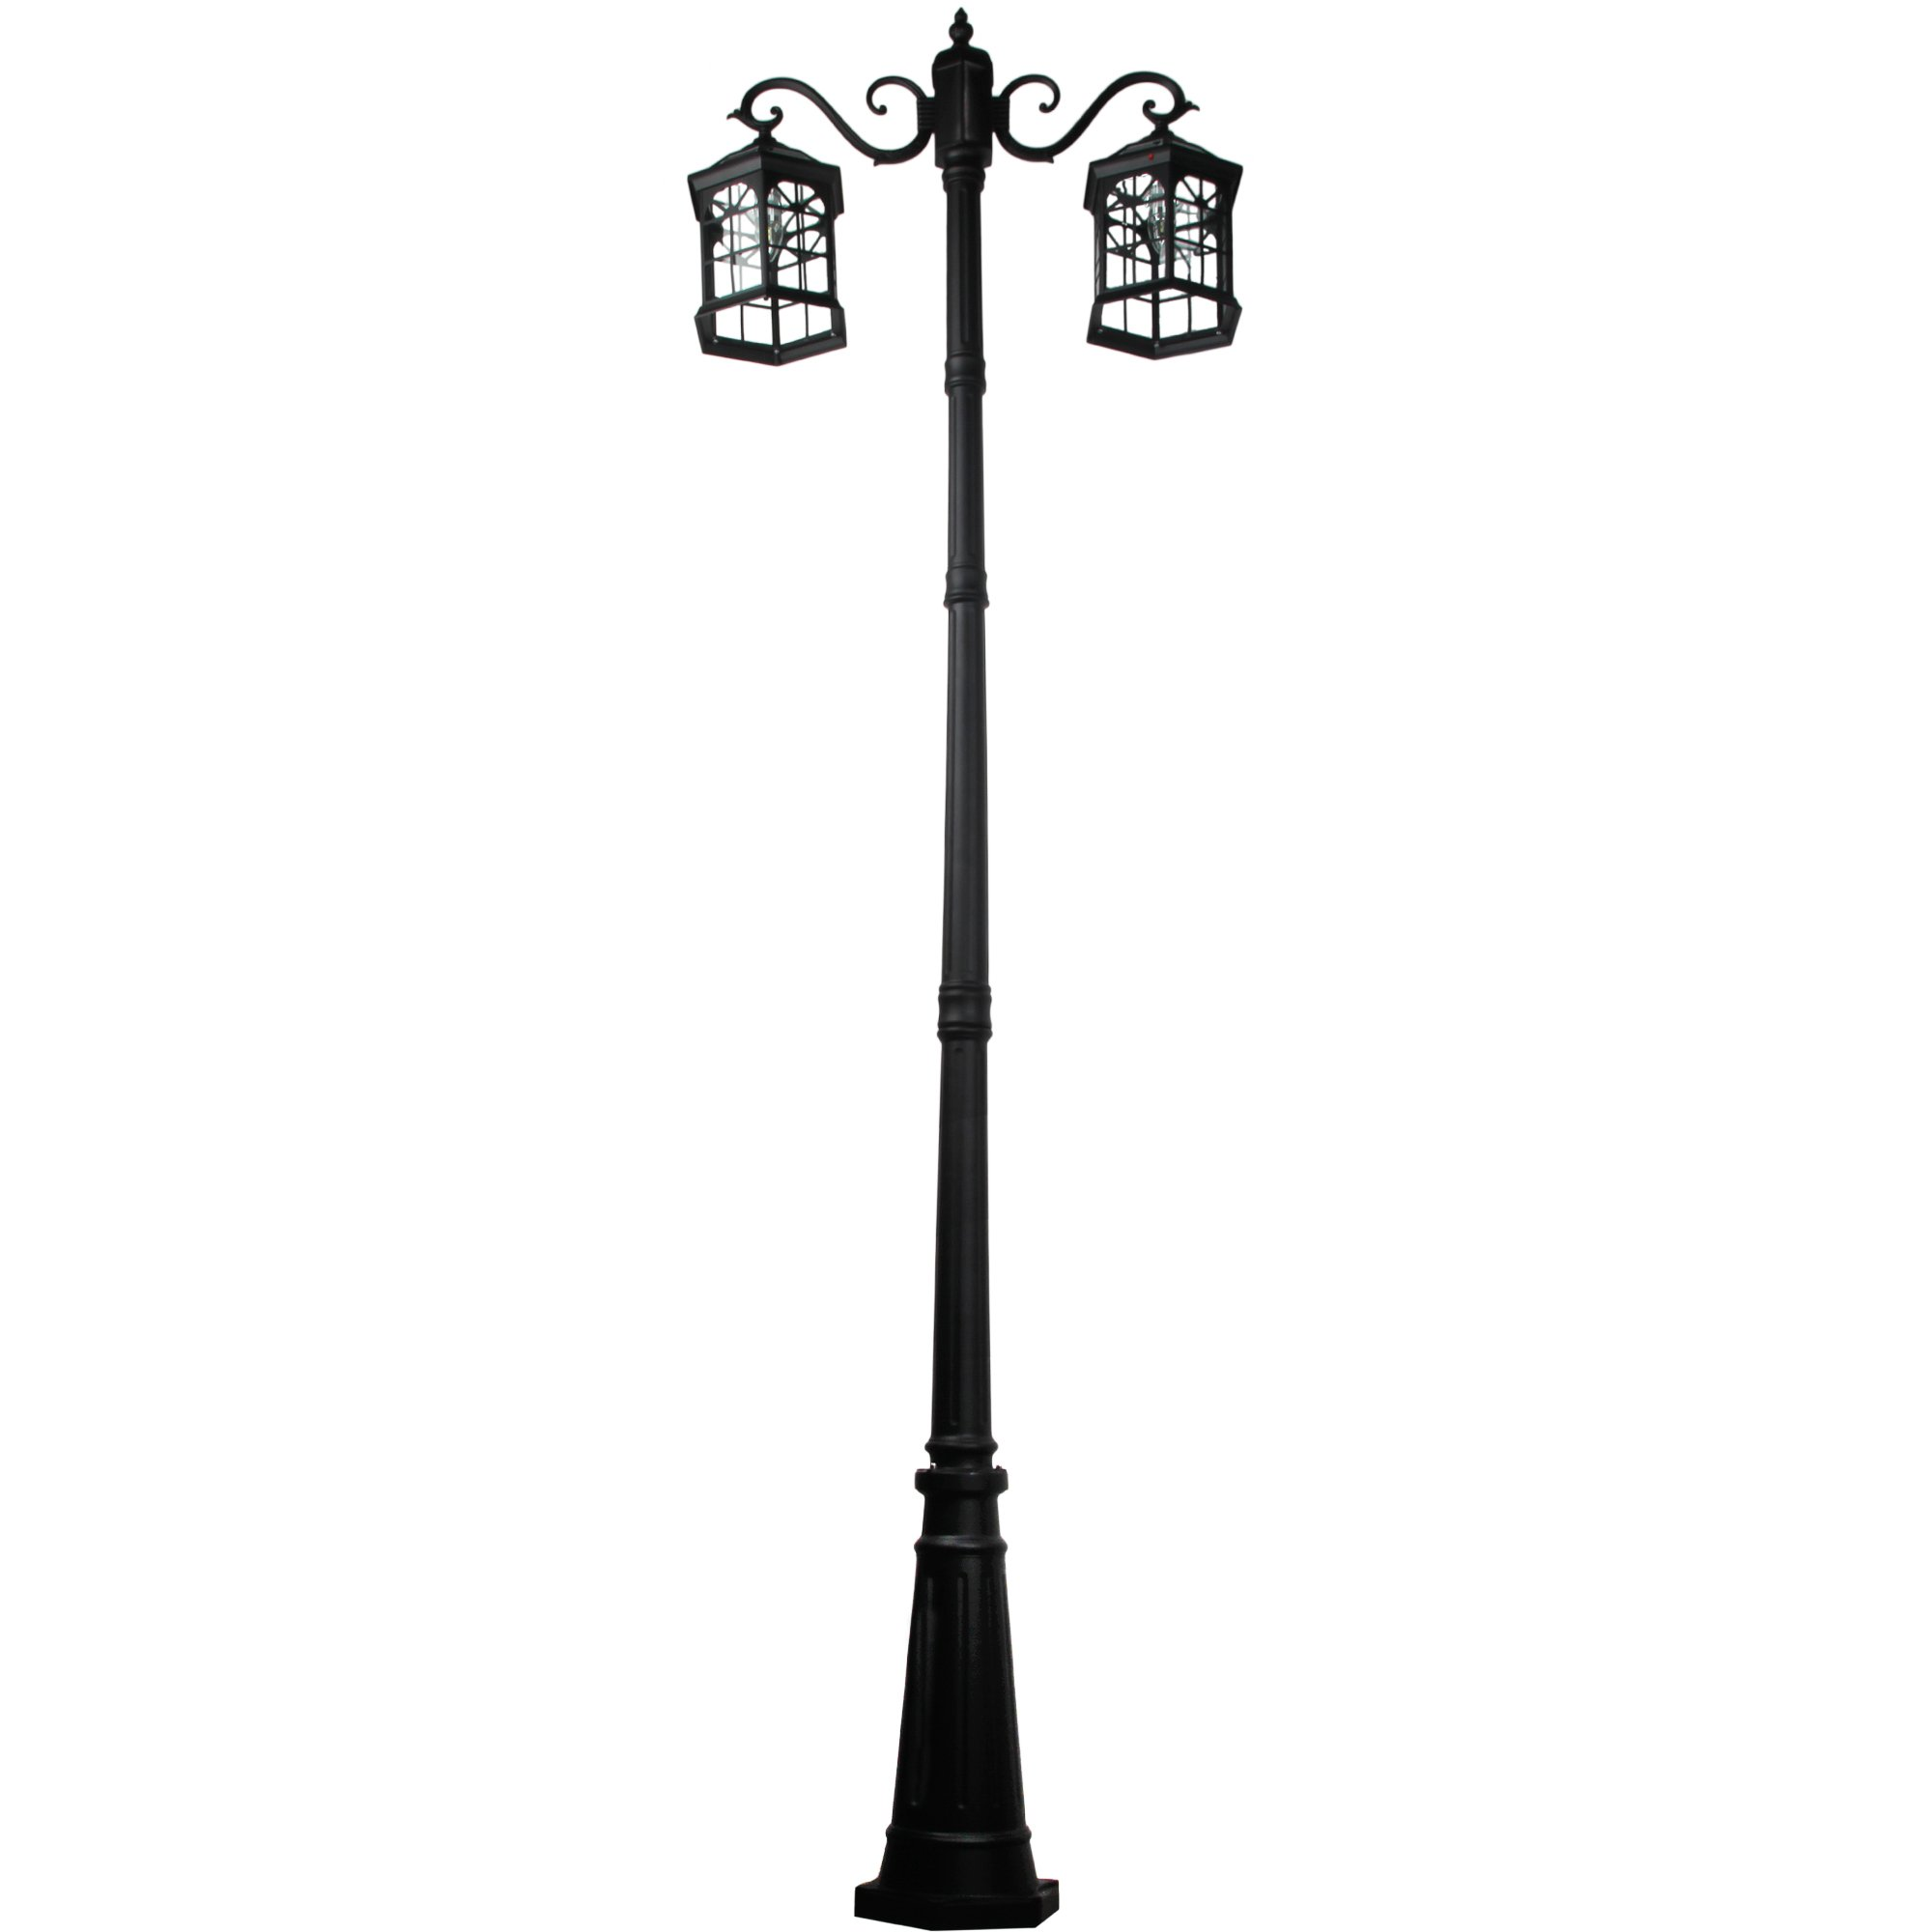 8 feet high outdoor solar lamp post with two heads and LED Lights SL-3801black2.45m